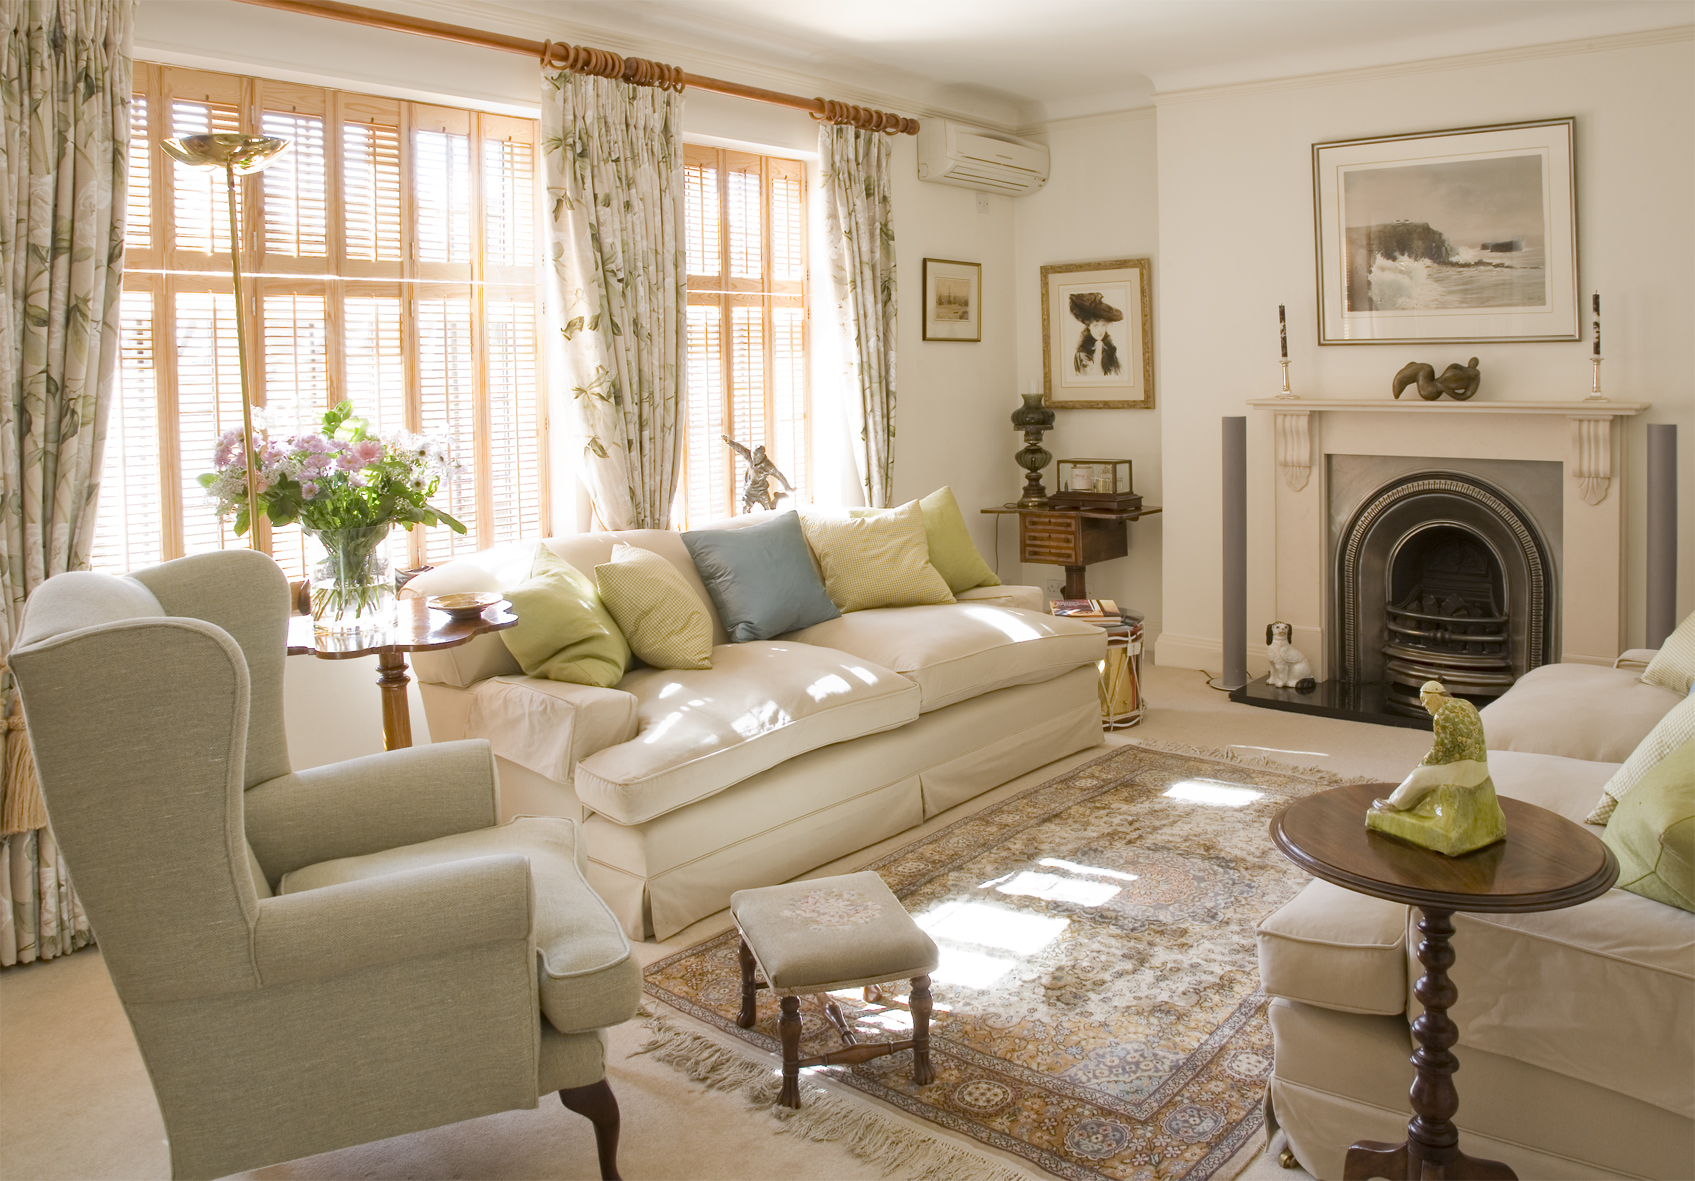 English country in the city gaff adrienne chinn 39 s for English country living room ideas